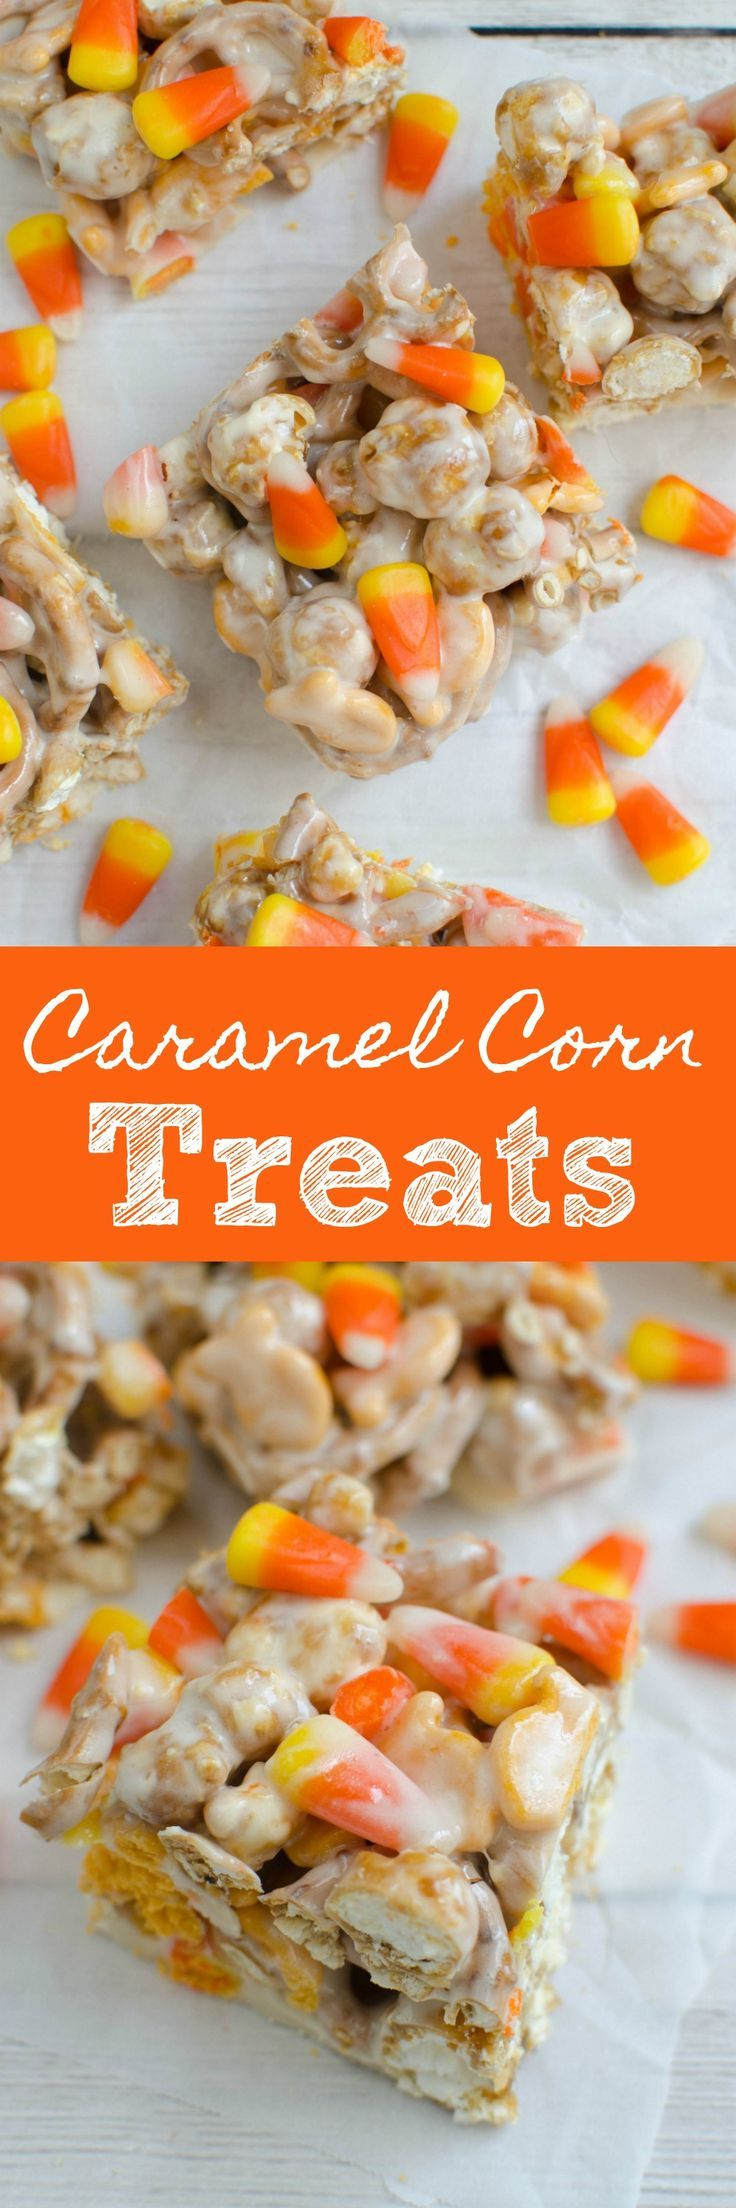 Caramel Corn Treats are the perfect sweet and salty fall snack! Caramel corn, pretzels, cheddar Goldfish, and candy corn all coated in melted marshmallow!